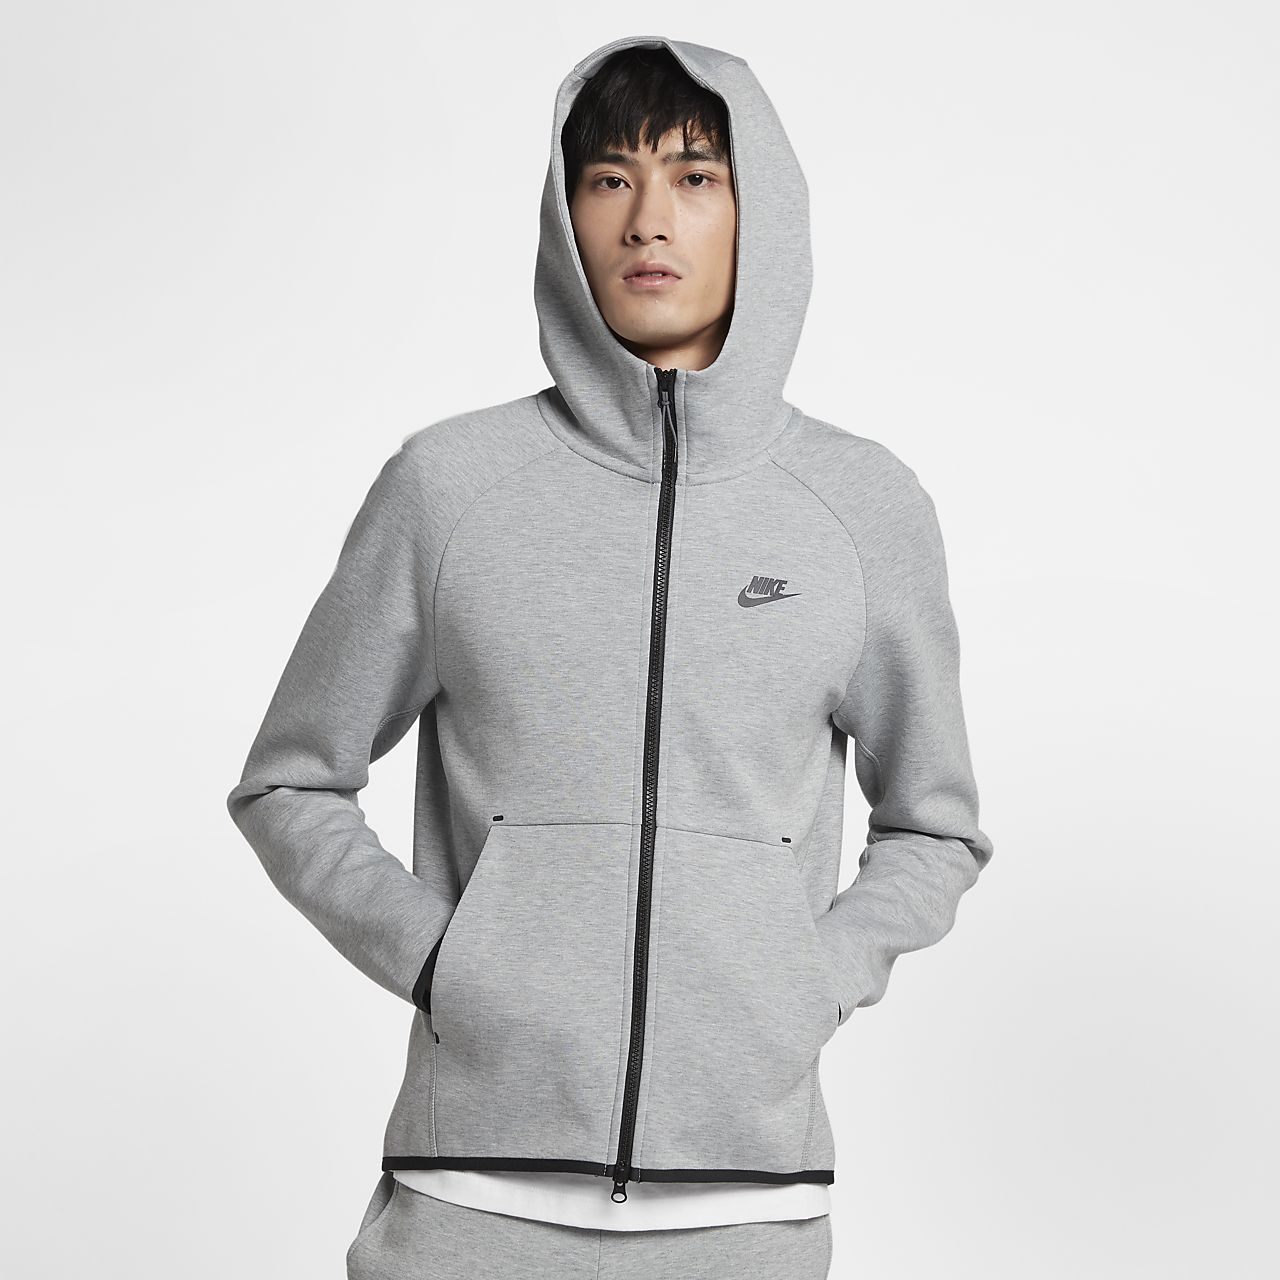 9779c35731b0 Nike Sportswear Tech Fleece Men s Full-Zip Hoodie. Nike.com LU